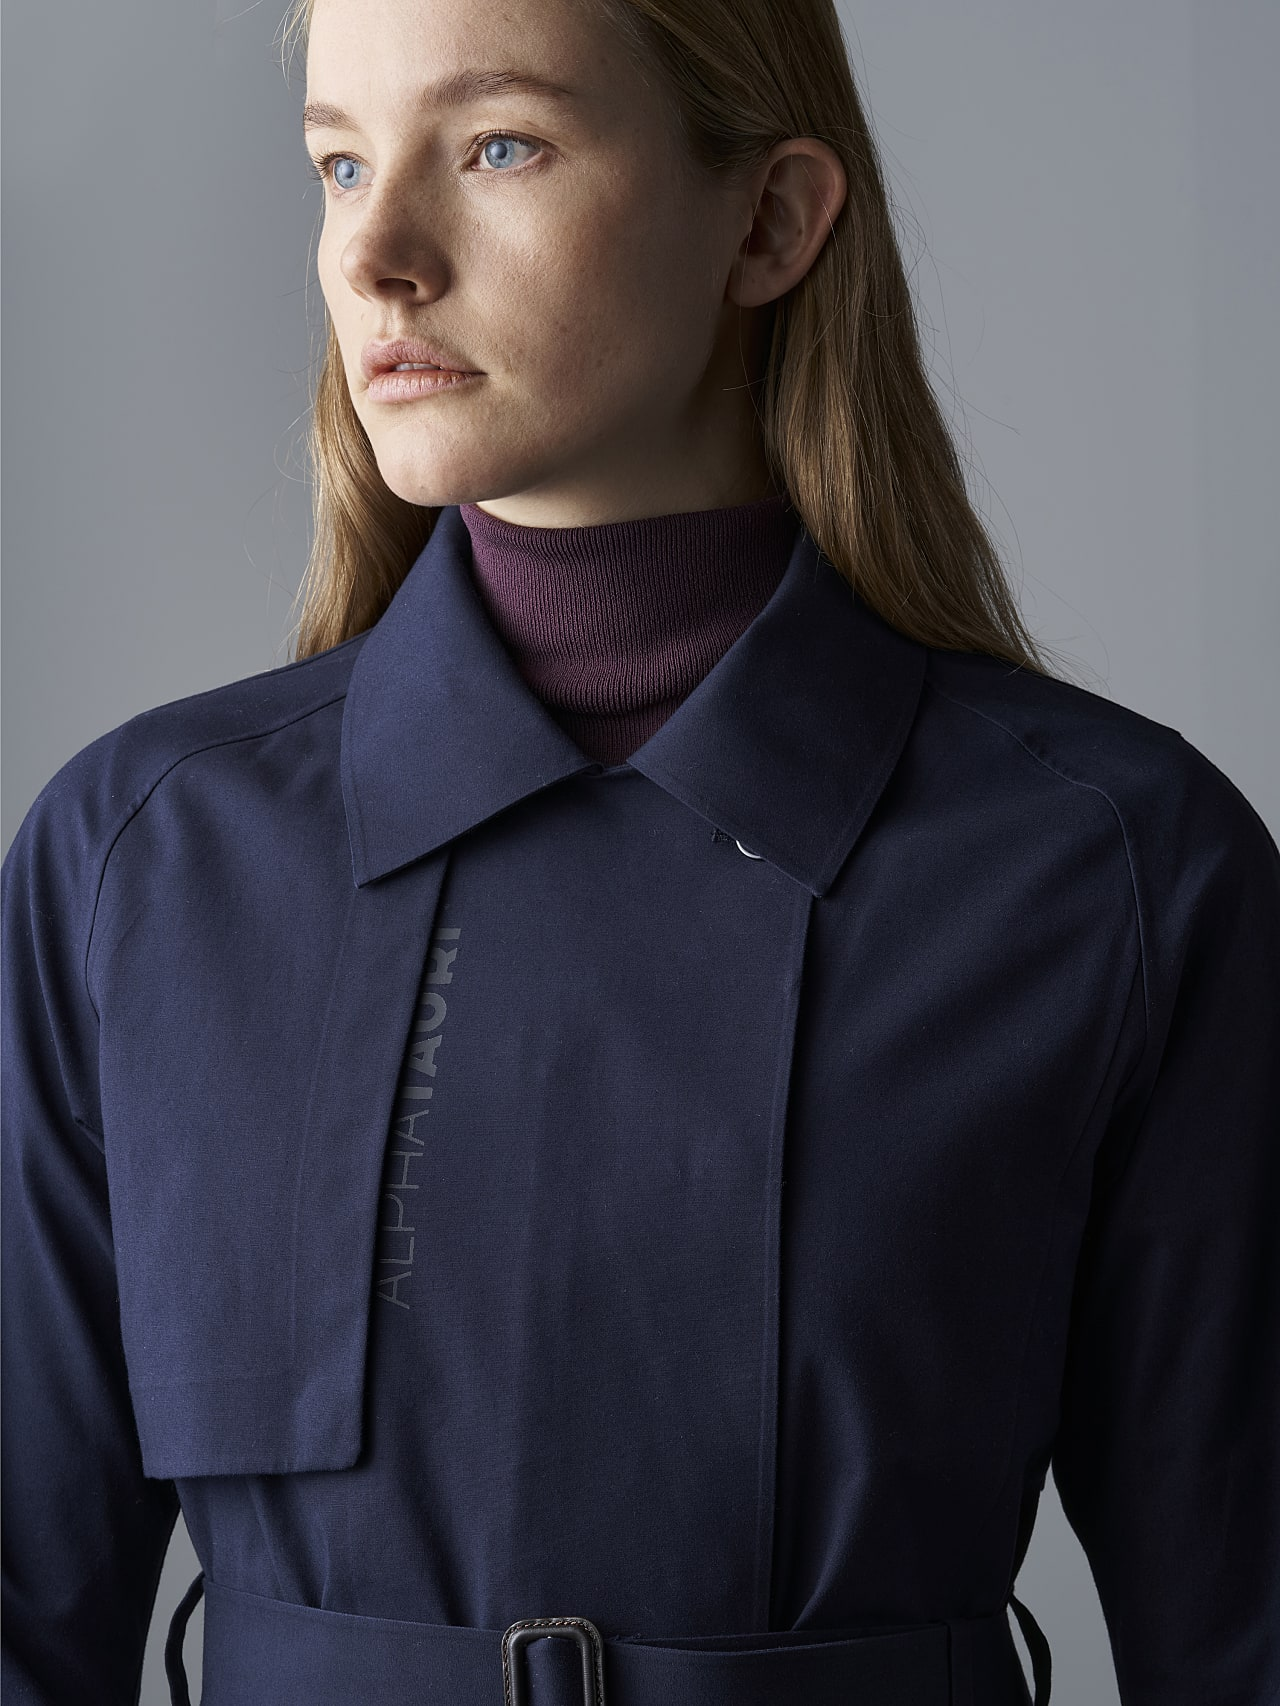 OMANI V1.Y5.02 Packable and Waterproof Trench Coat navy scene7.view.9.name Alpha Tauri